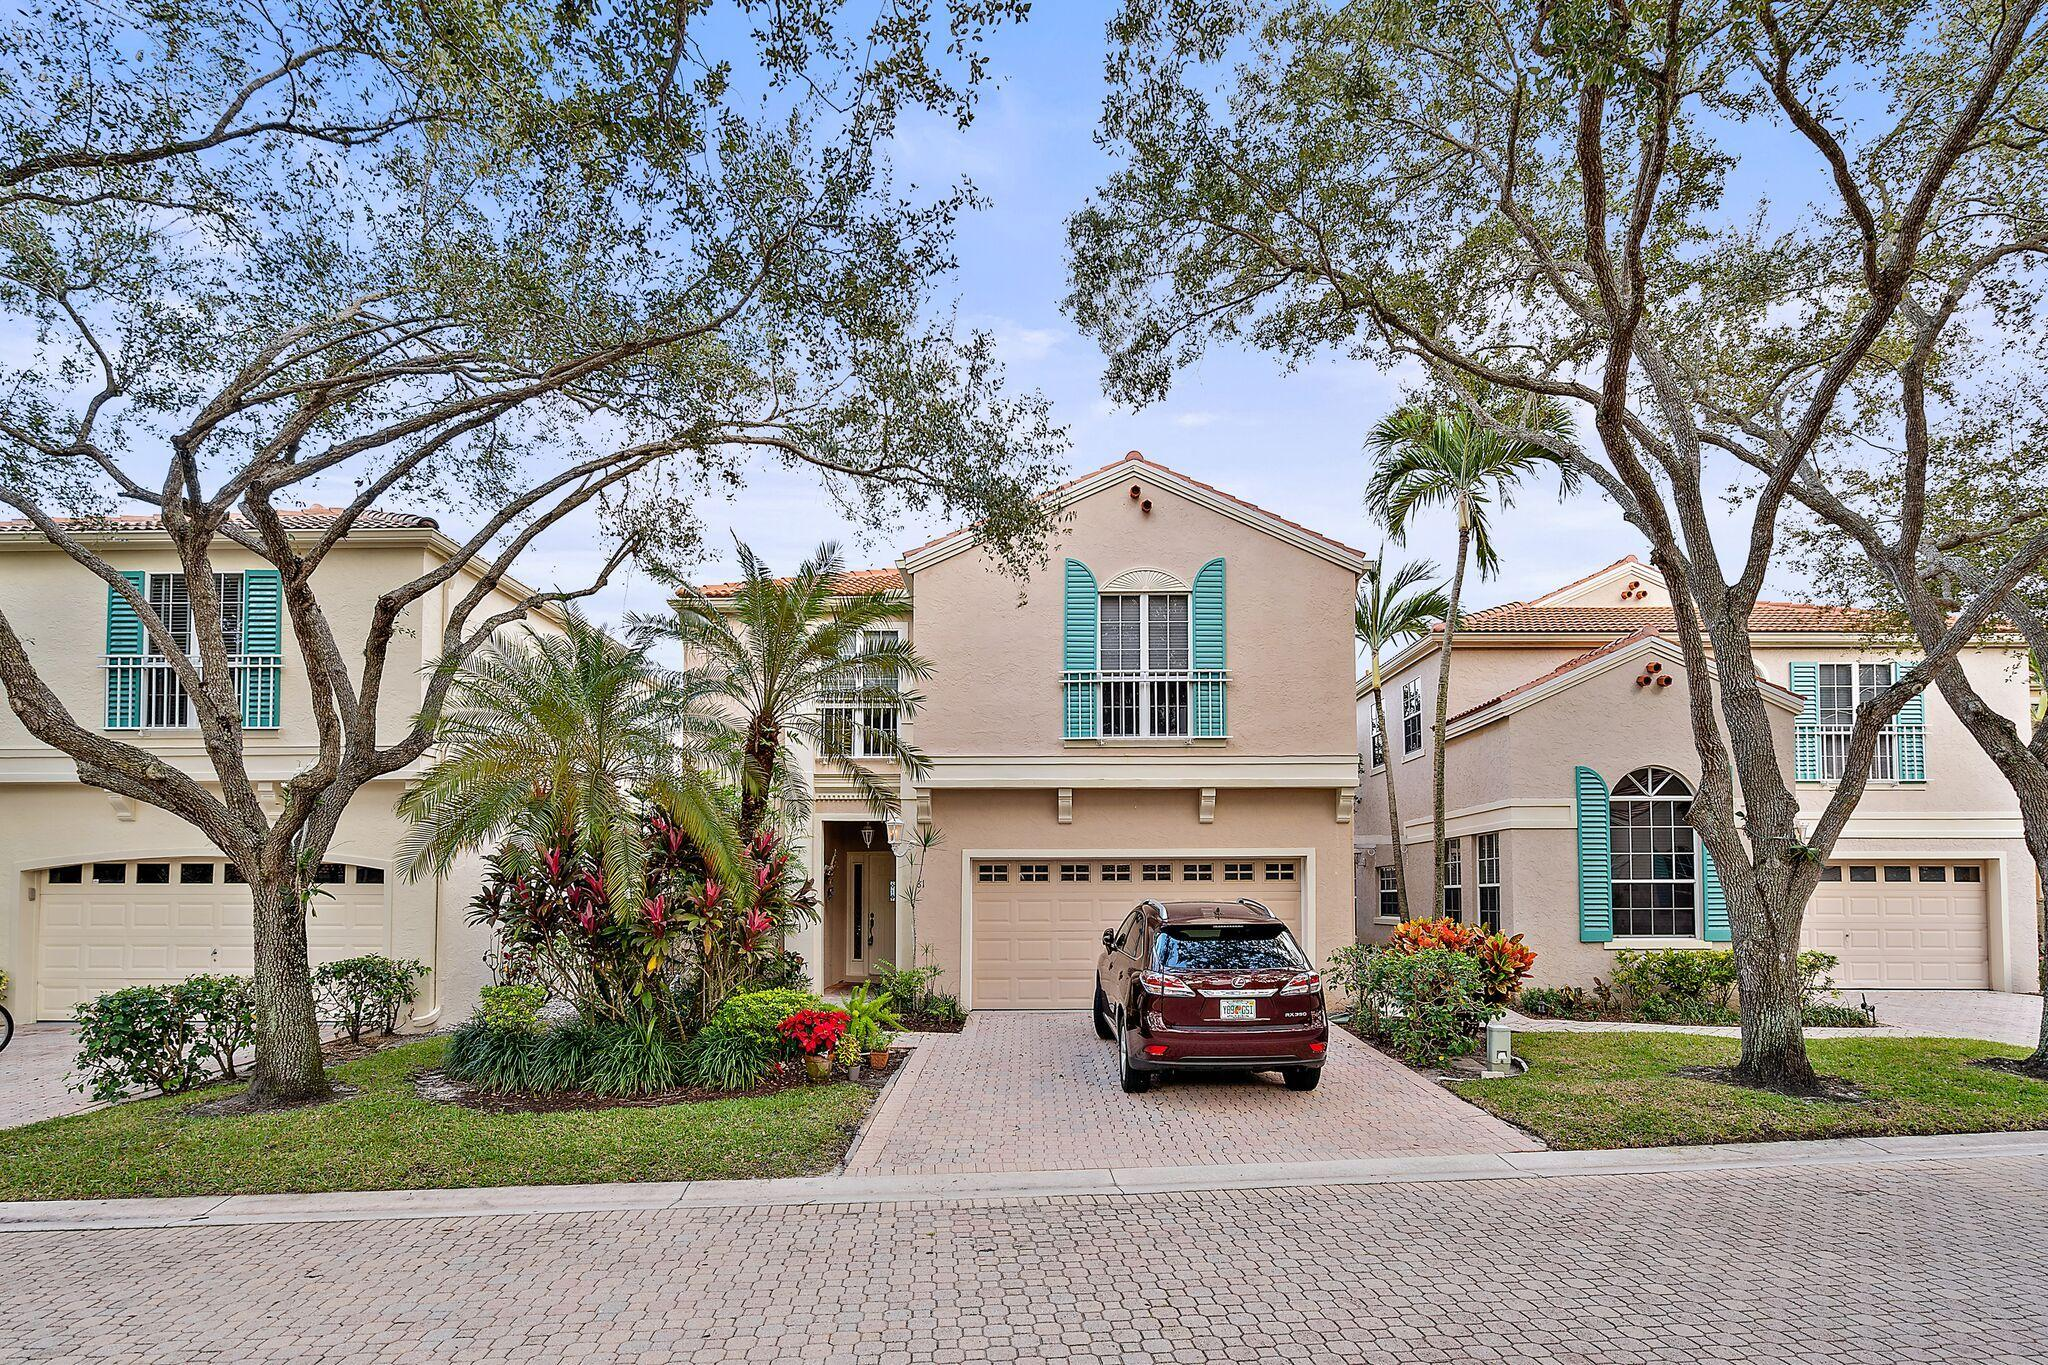 Photo of 81 Via Verona, Palm Beach Gardens, FL 33418